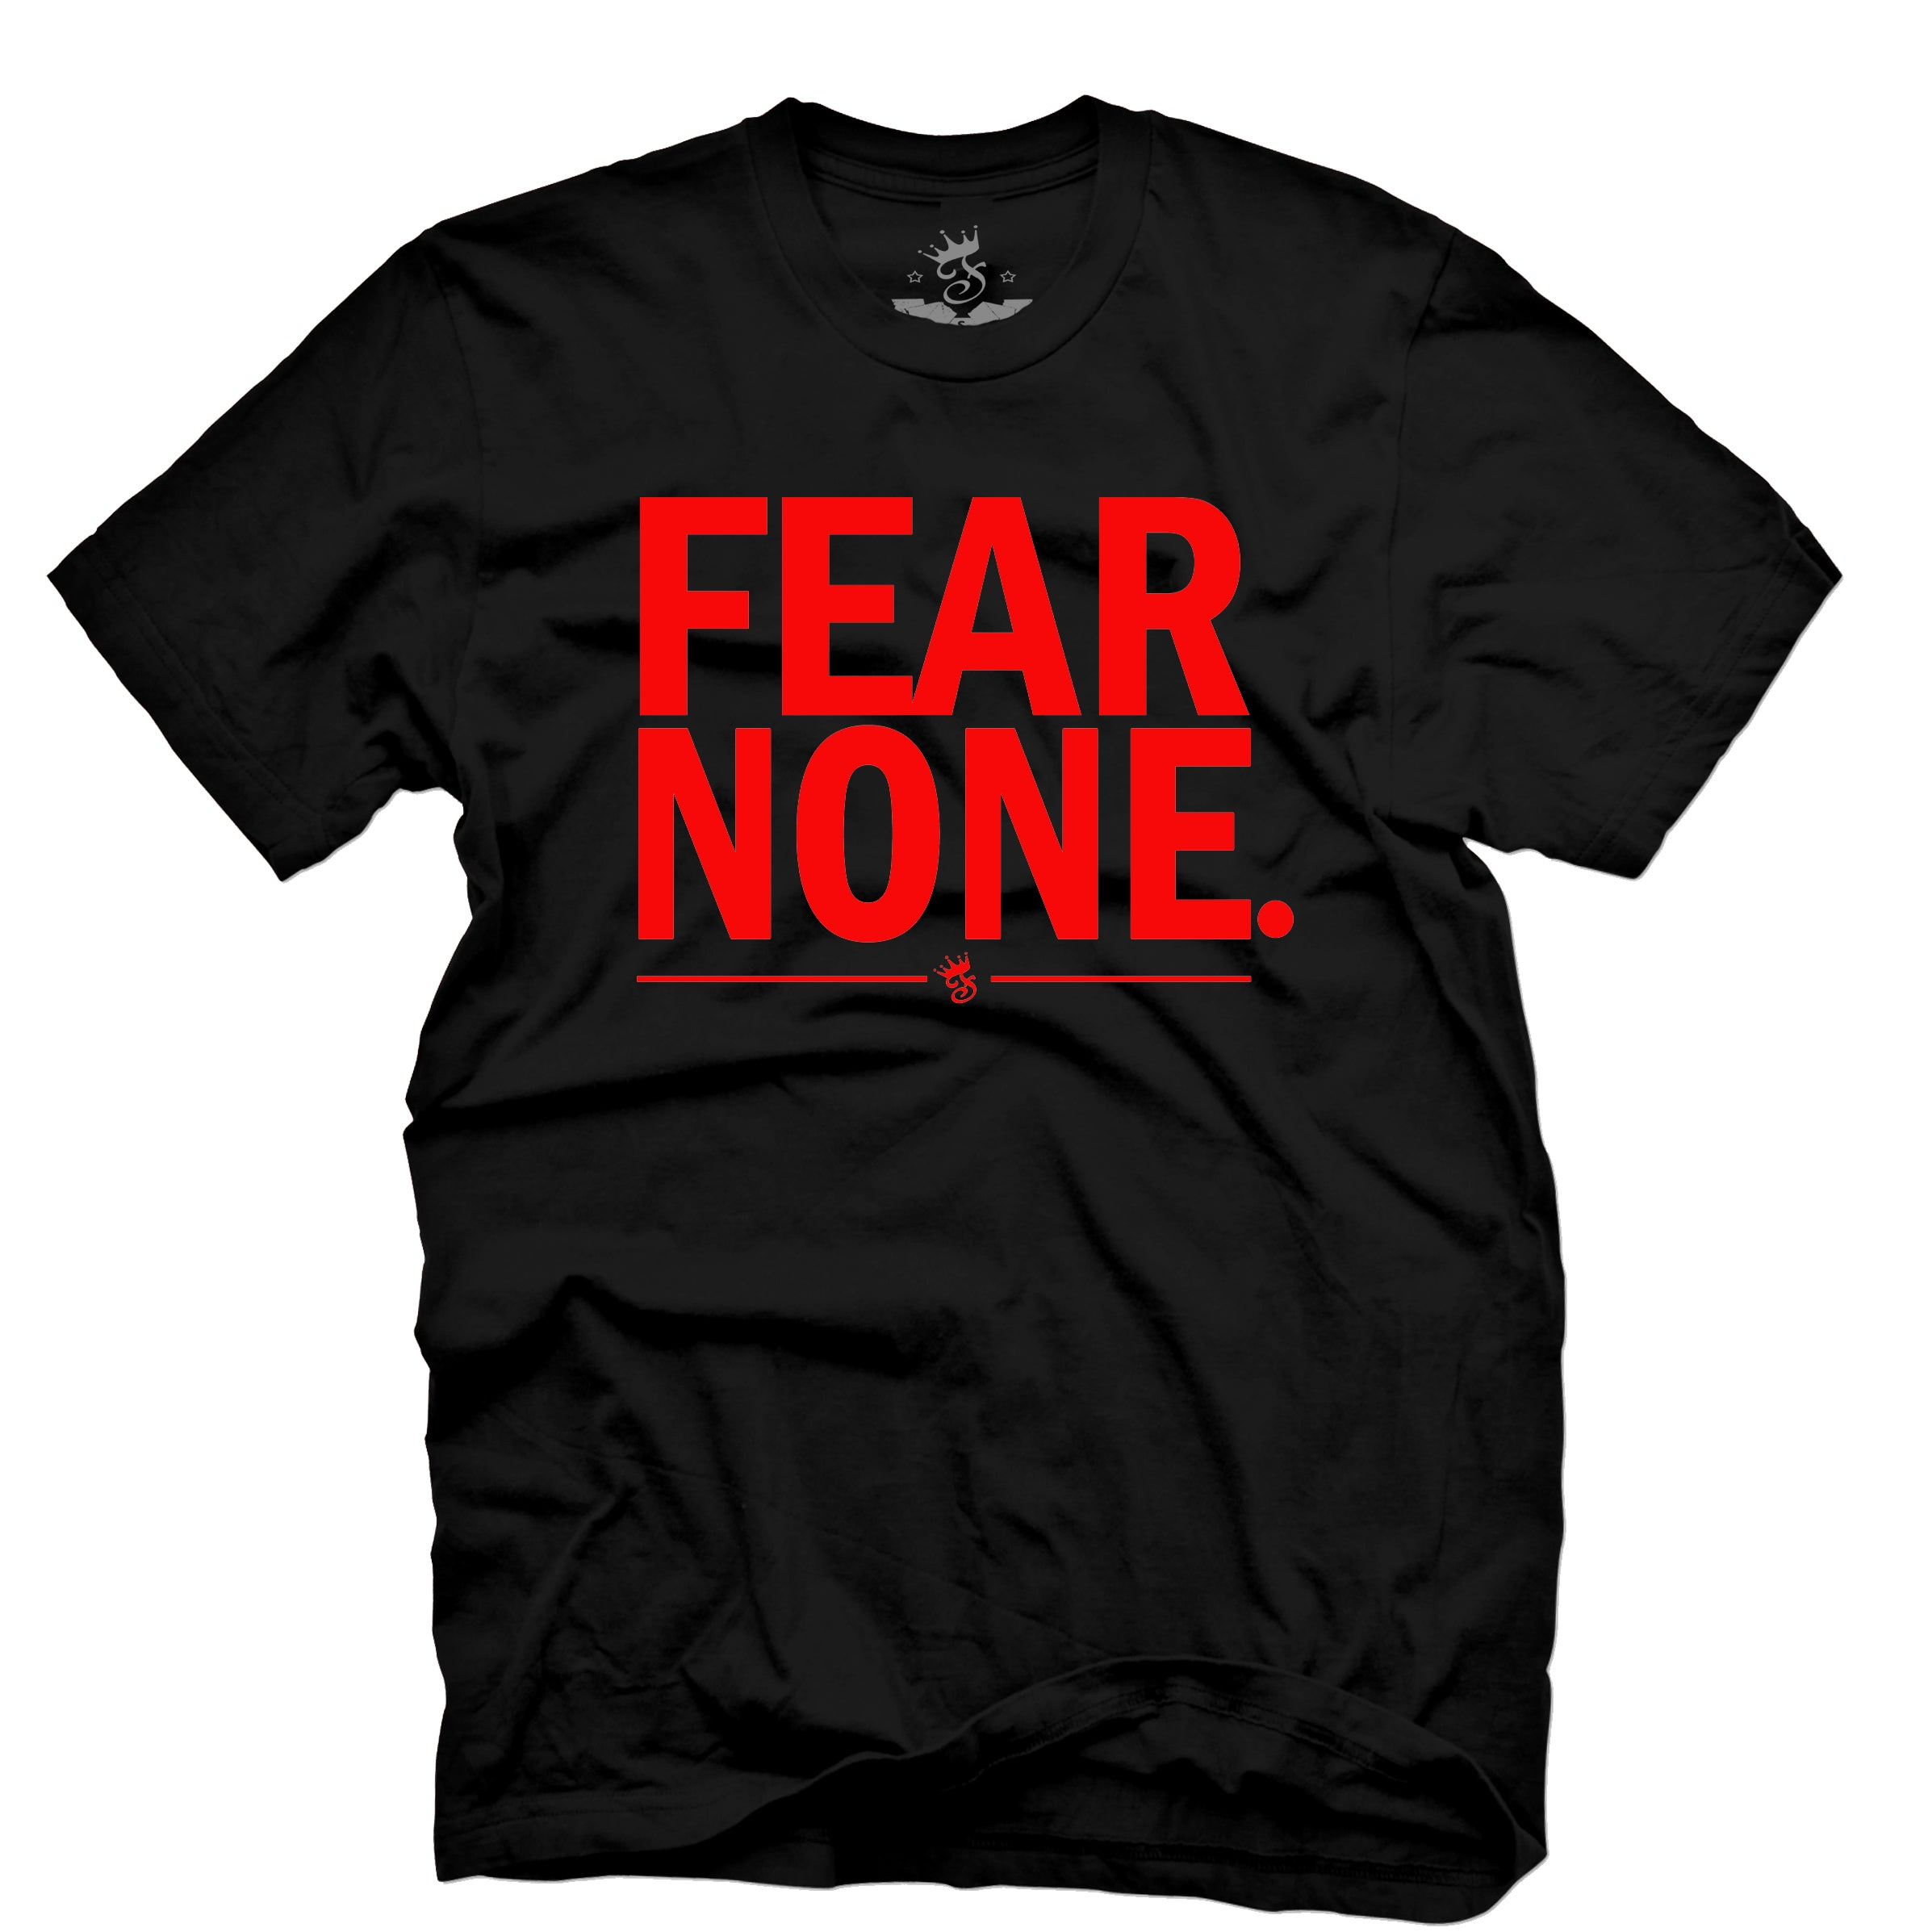 FEAR NONE - Famous Club Clothing